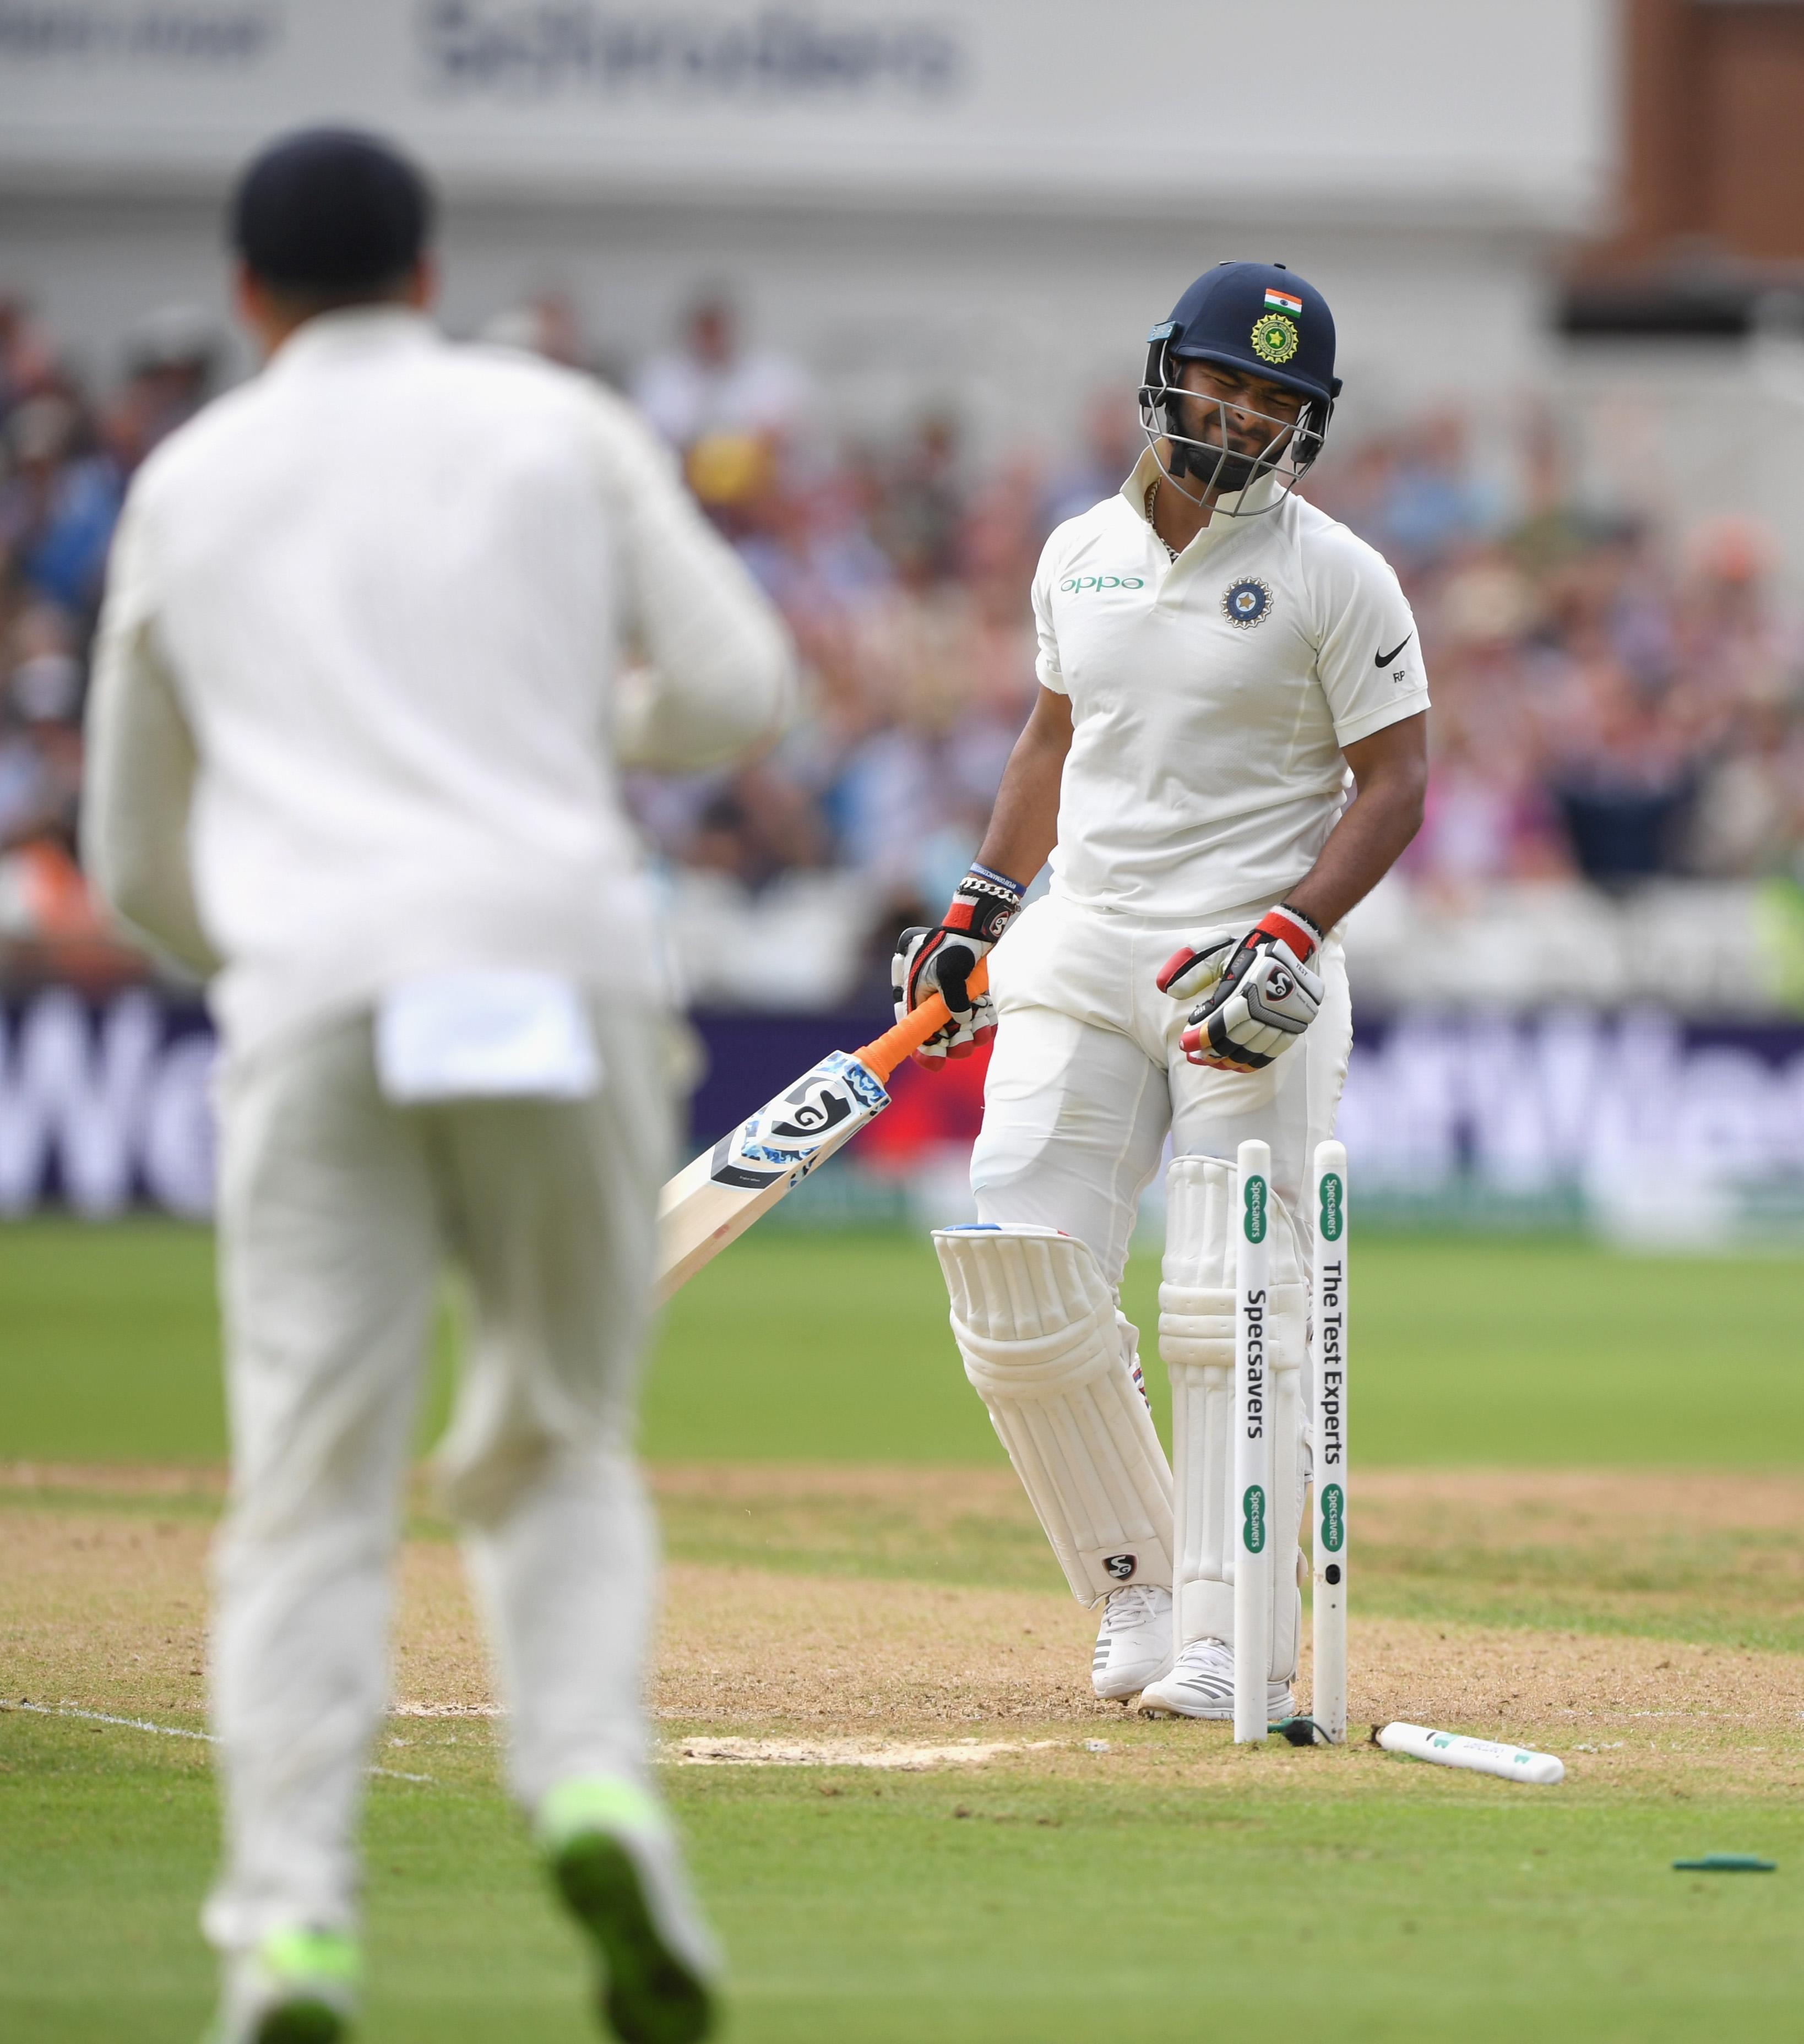 The incident occurred after Stuart Broad dismissed Rishabh Pant on Sunday